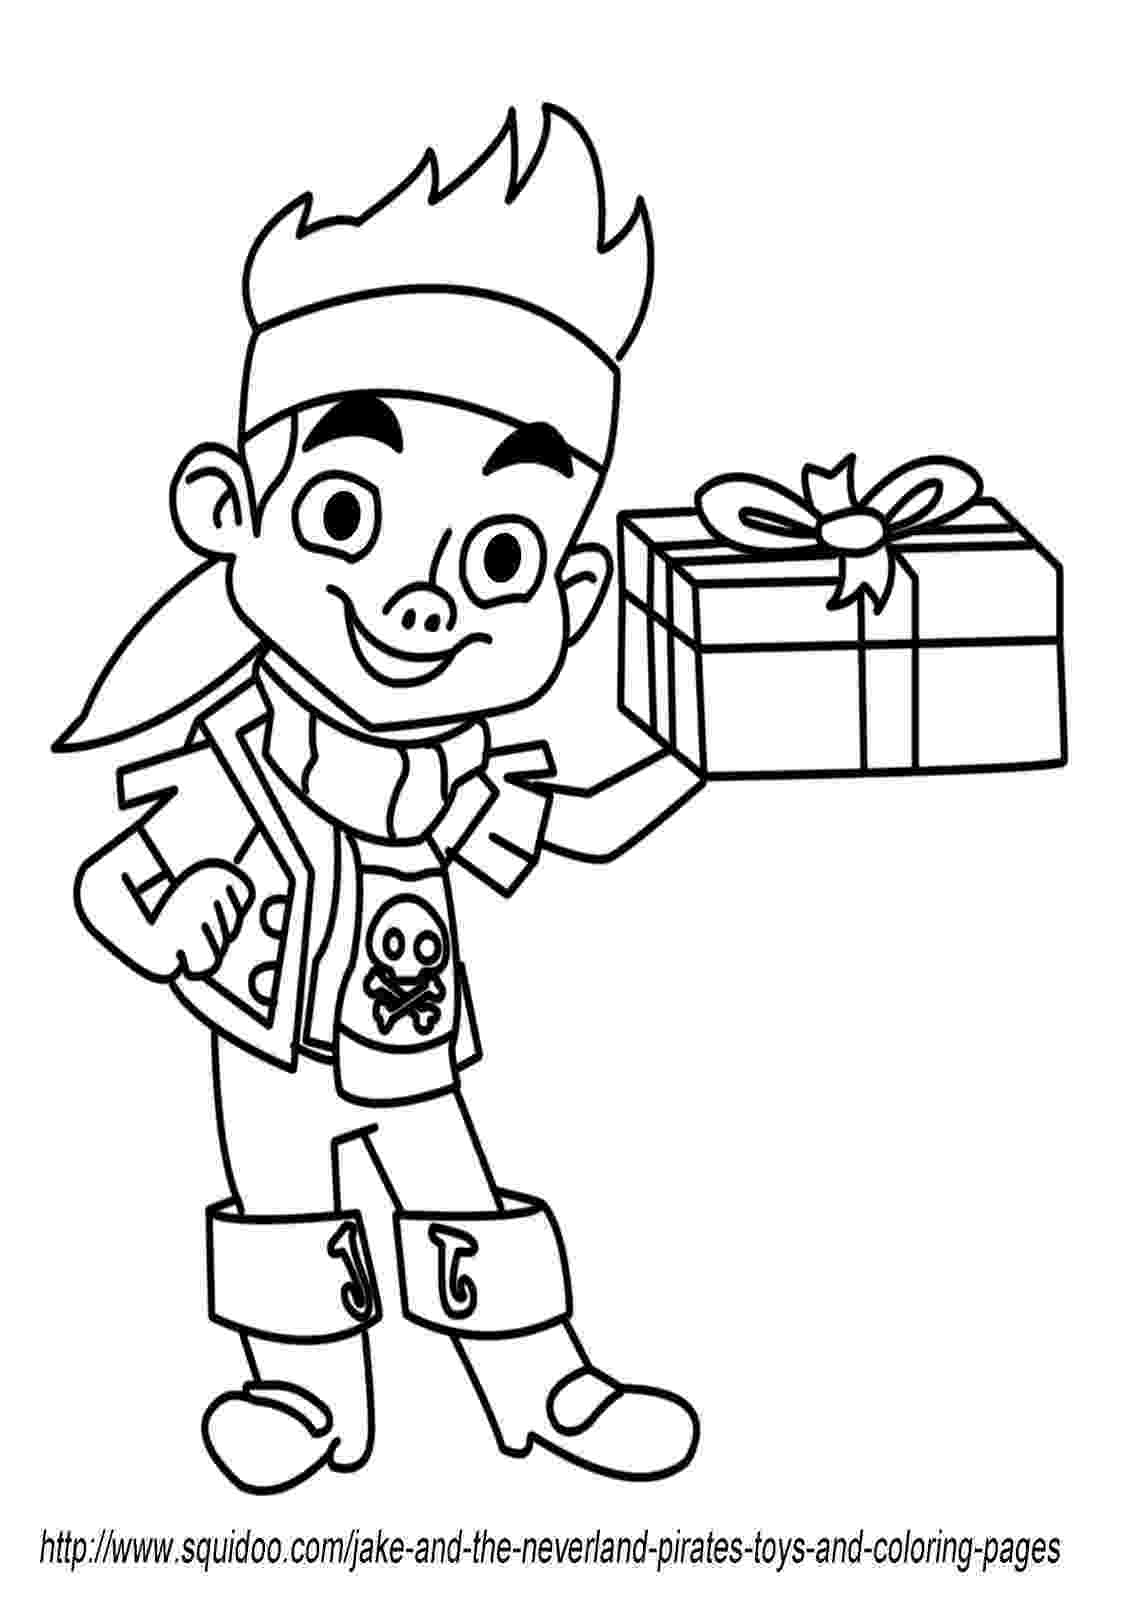 jake neverland pirates coloring pages jake pirate coloring page free printable coloring pages pages coloring neverland pirates jake